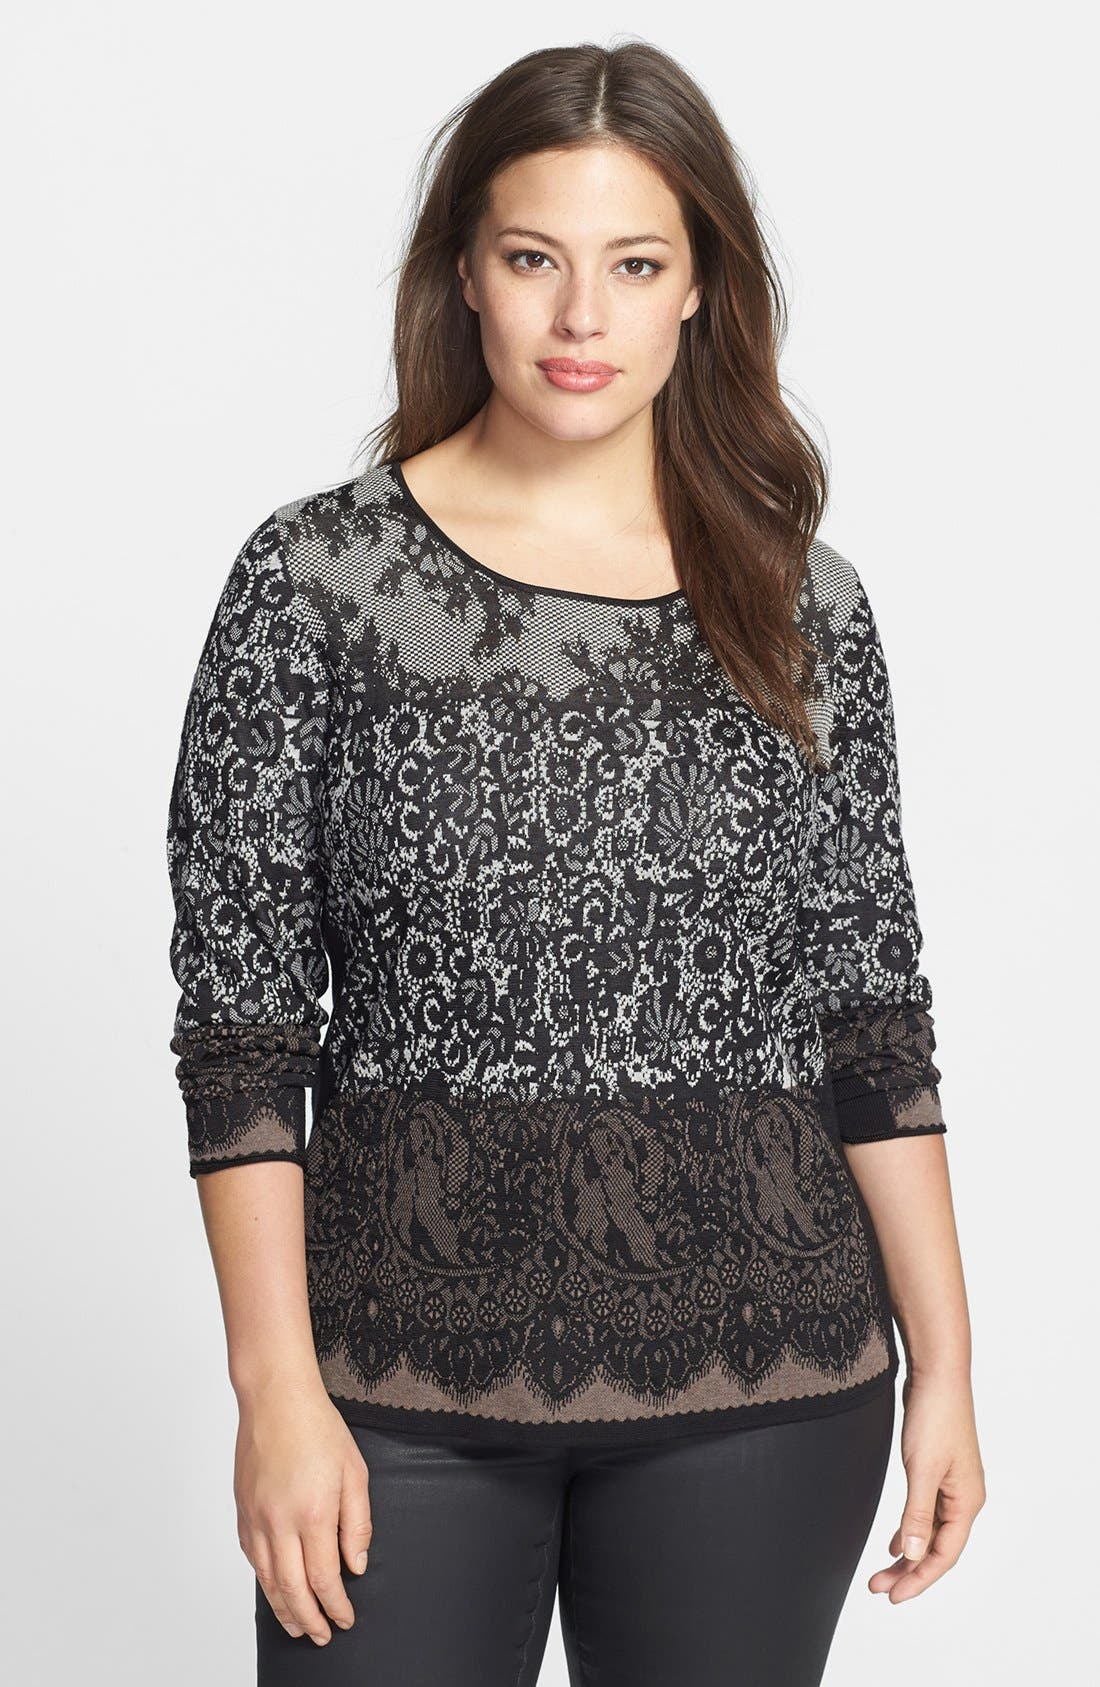 Alternate Image 1 Selected - NIC + ZOE Ombré Lace Pattern Top (Plus Size)